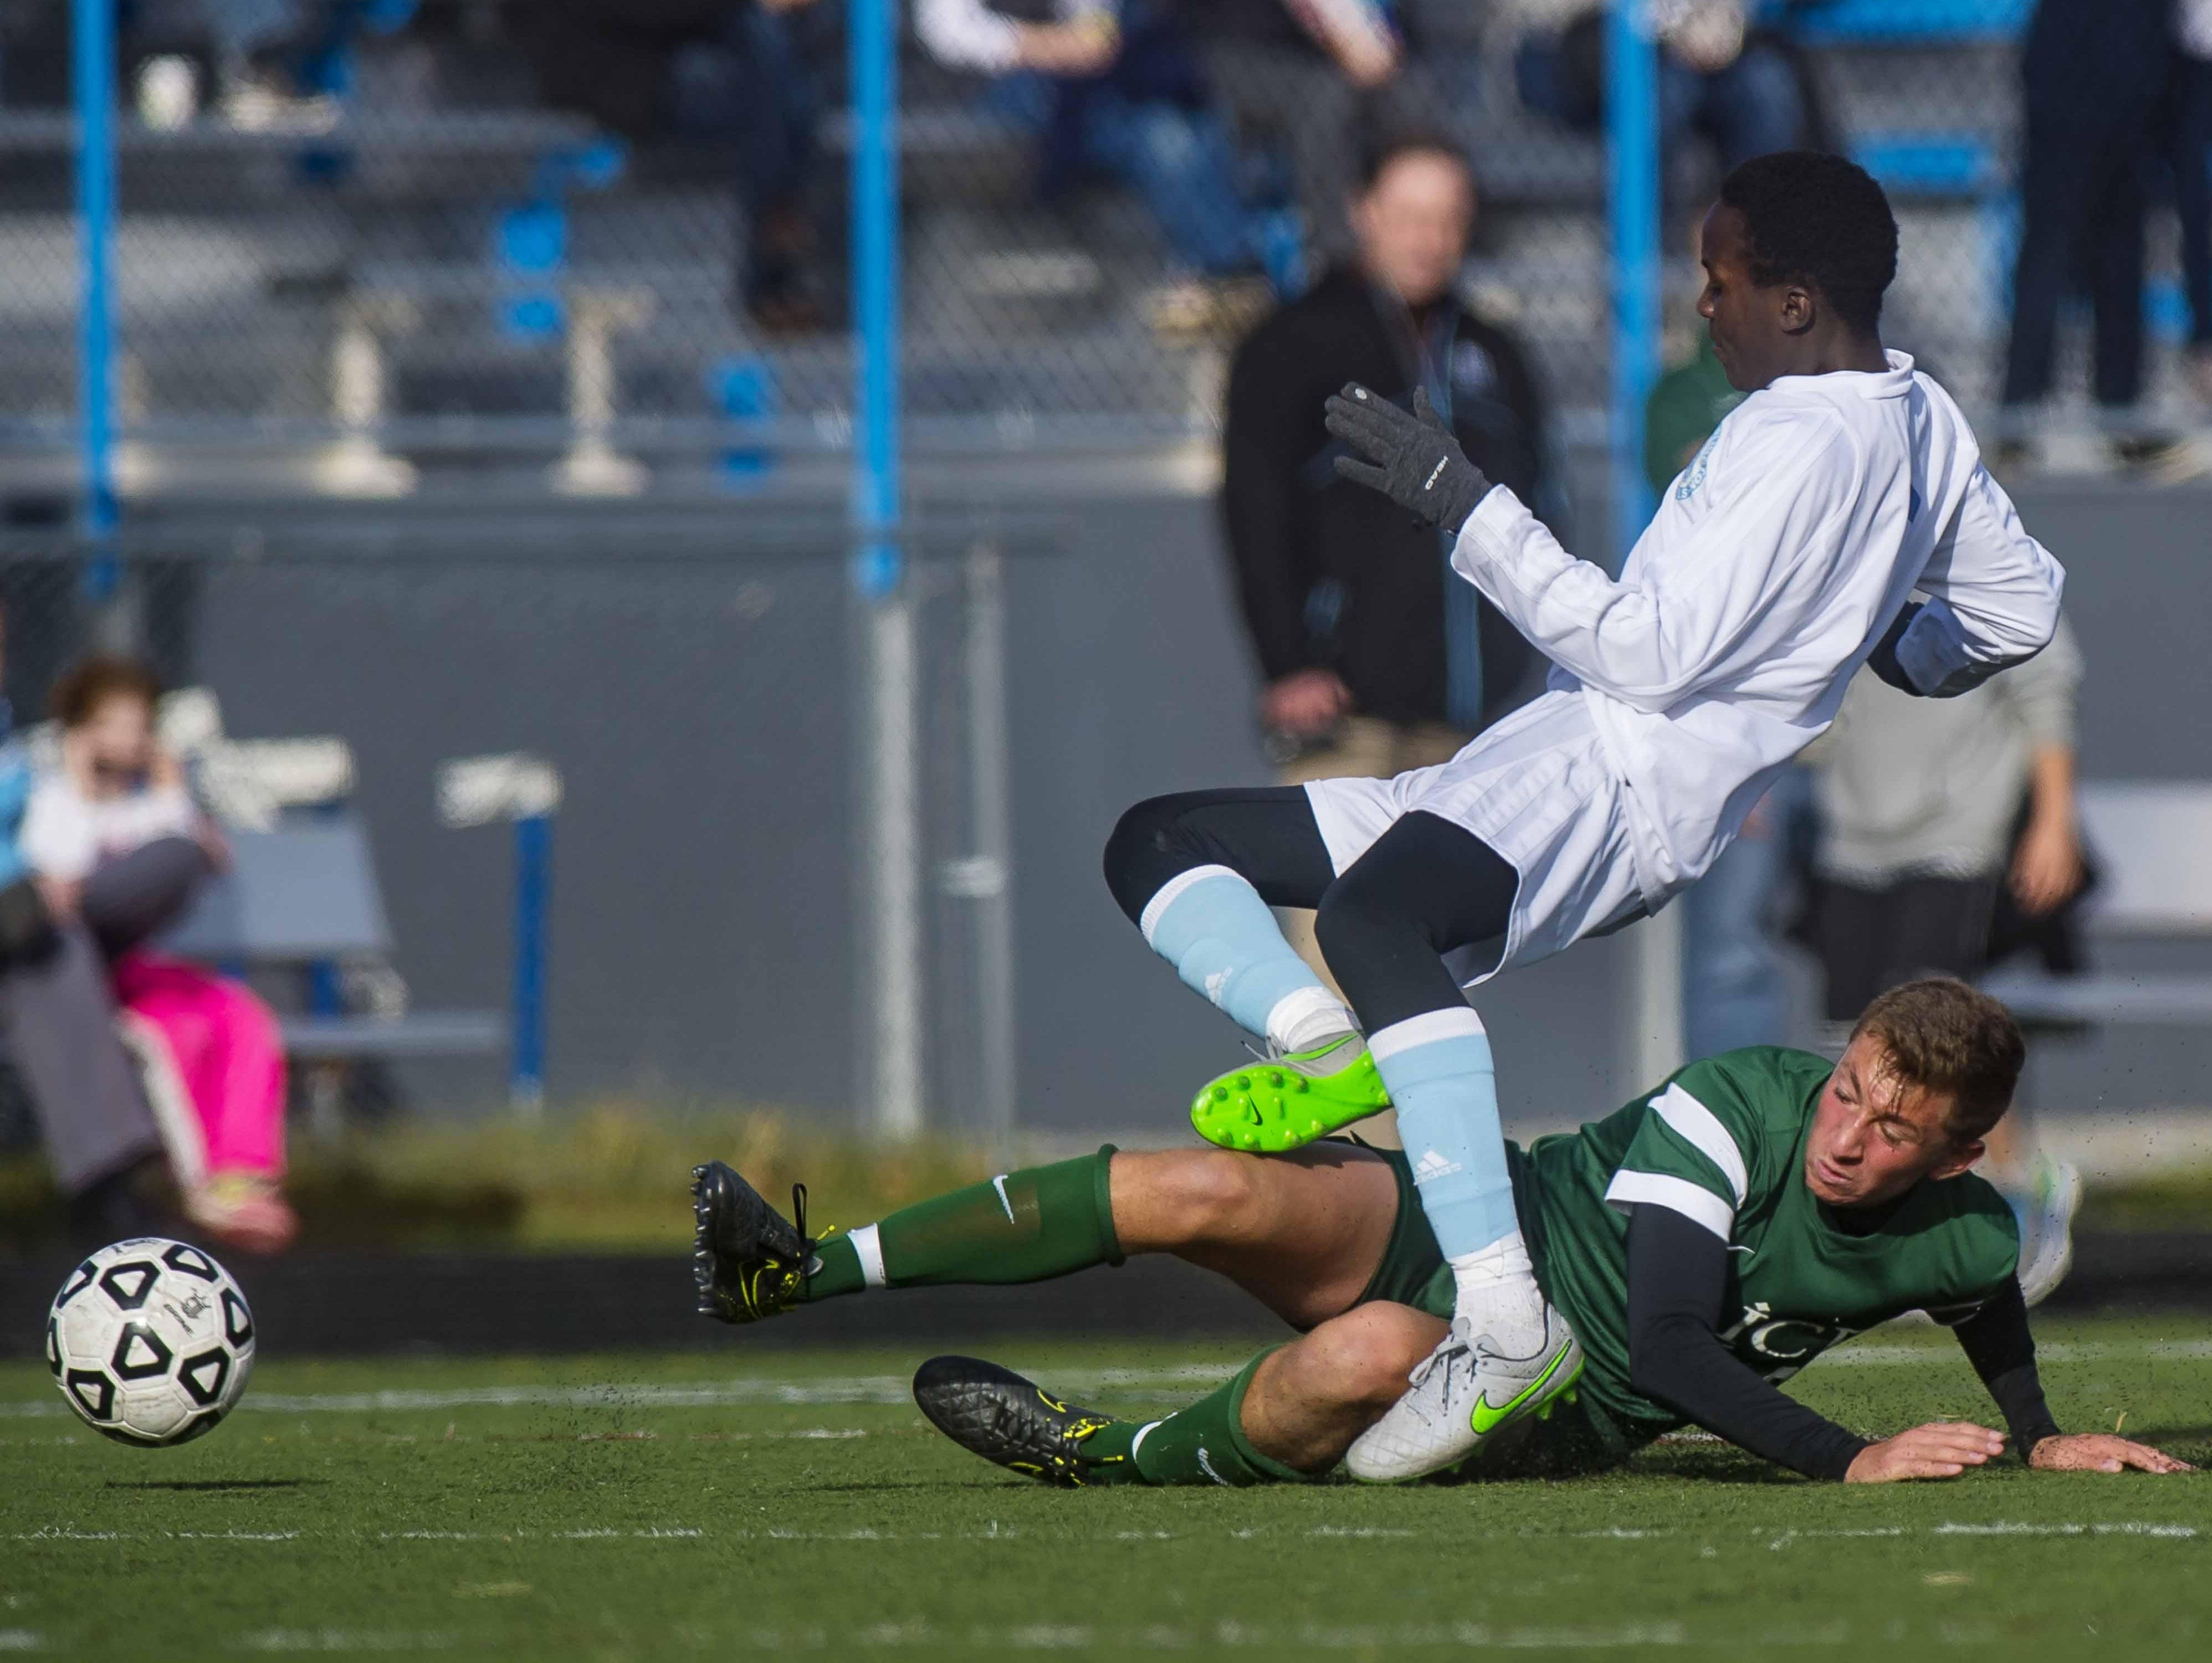 South Burlington's Amza Issa is tackled by Rice Memorial's Brent McKeown in South Burlington on Tuesday in the Division I high school boys soccer semifinals.